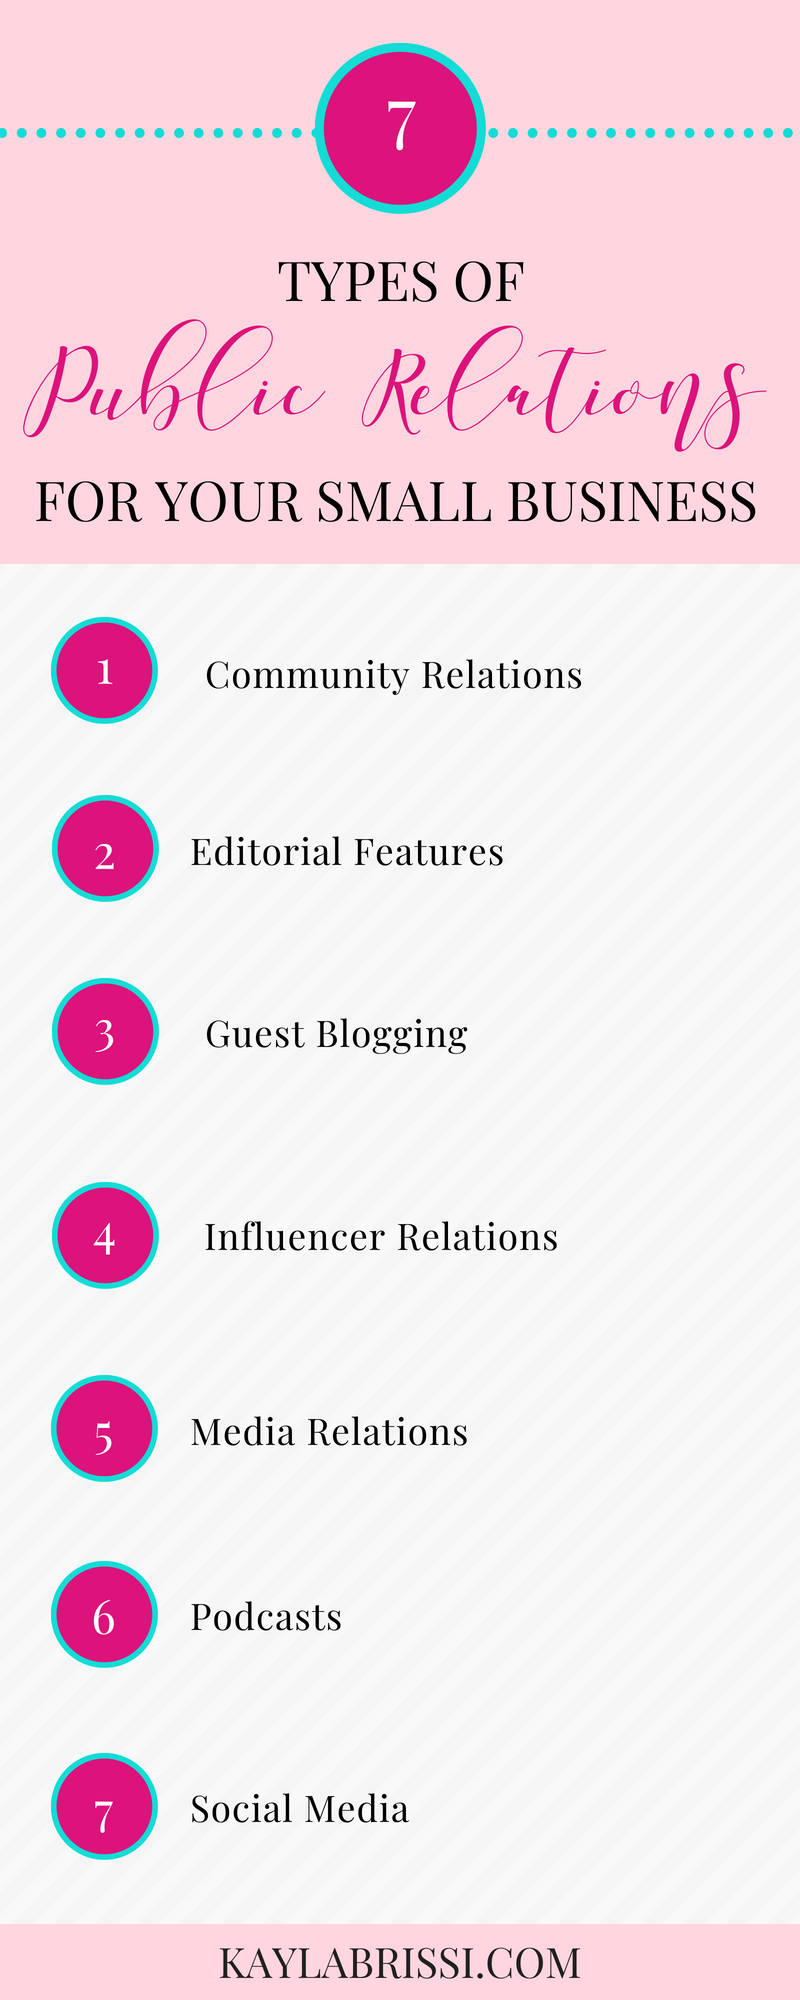 SEVEN TYPES OF PUBLIC RELATIONS INFOGRAPHIC